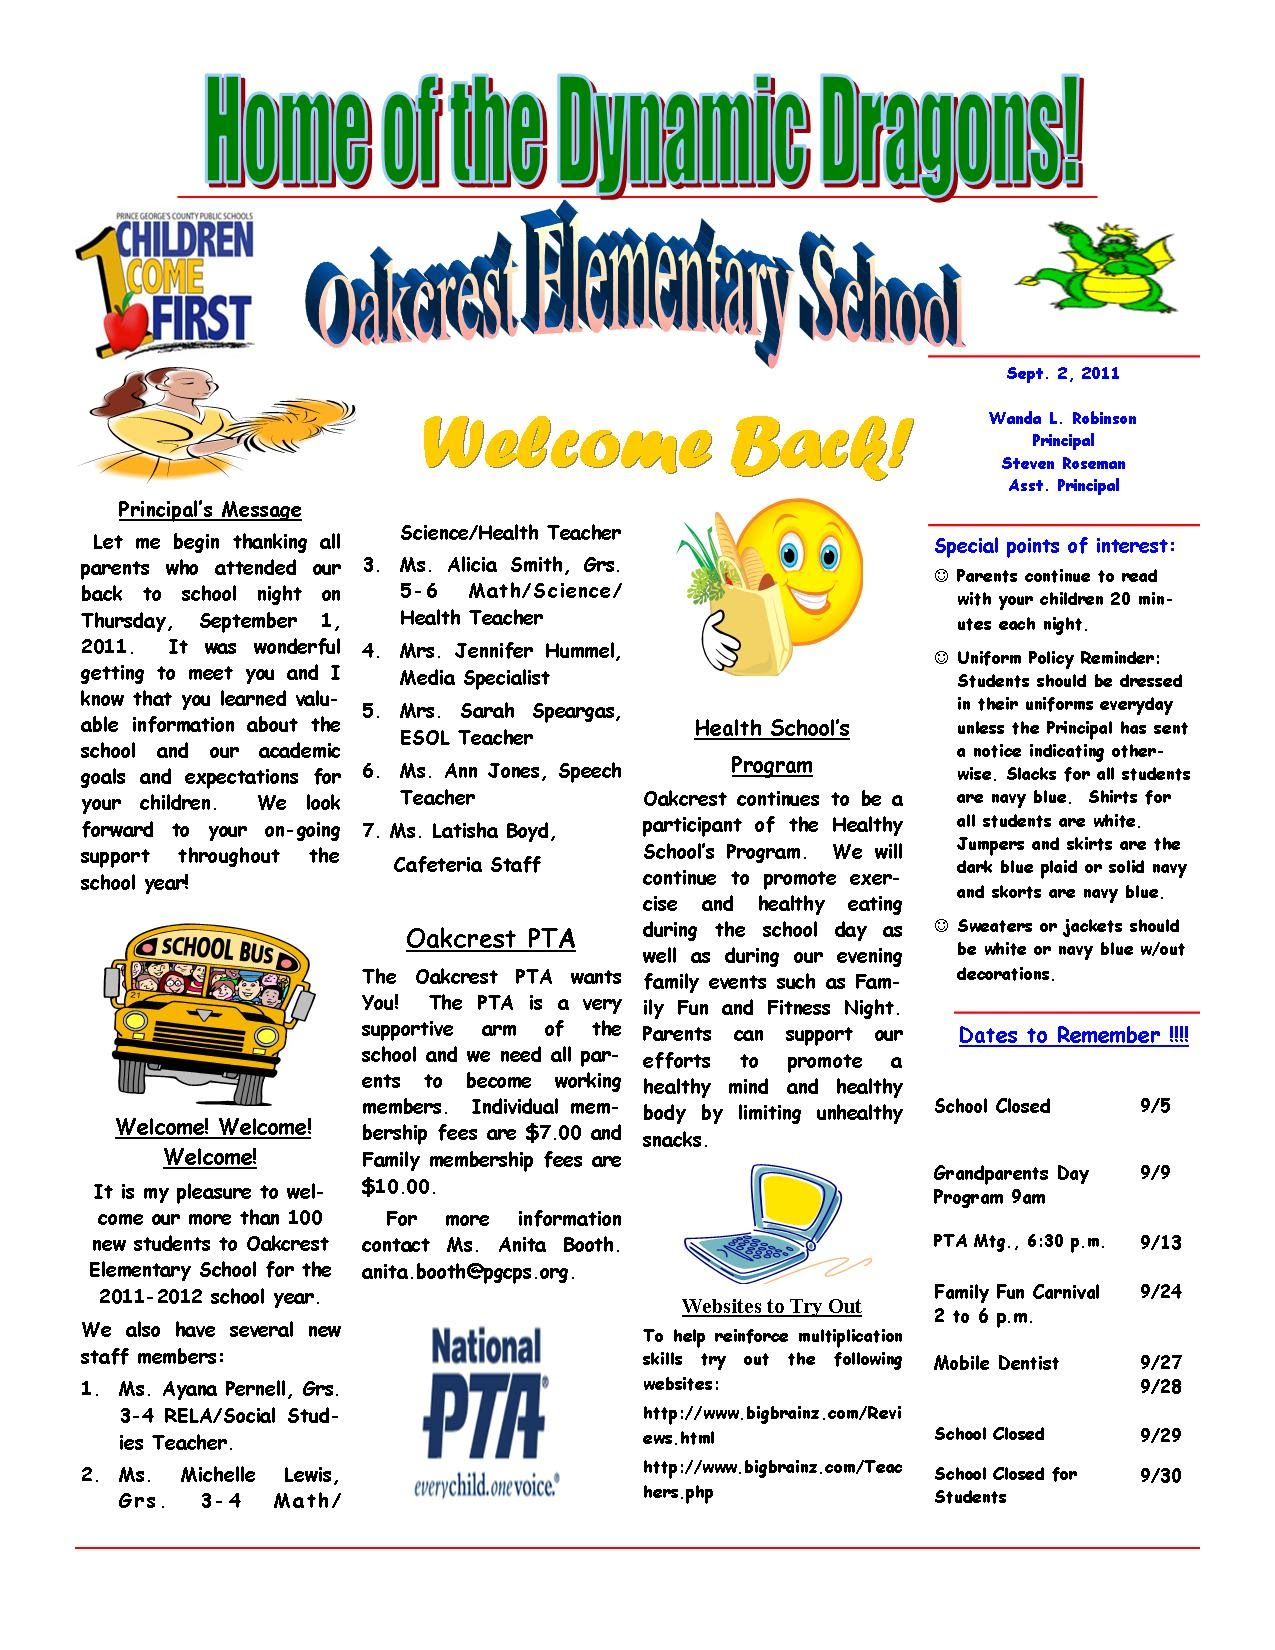 Newsletters and Announcements - OAKCREST Elementary School